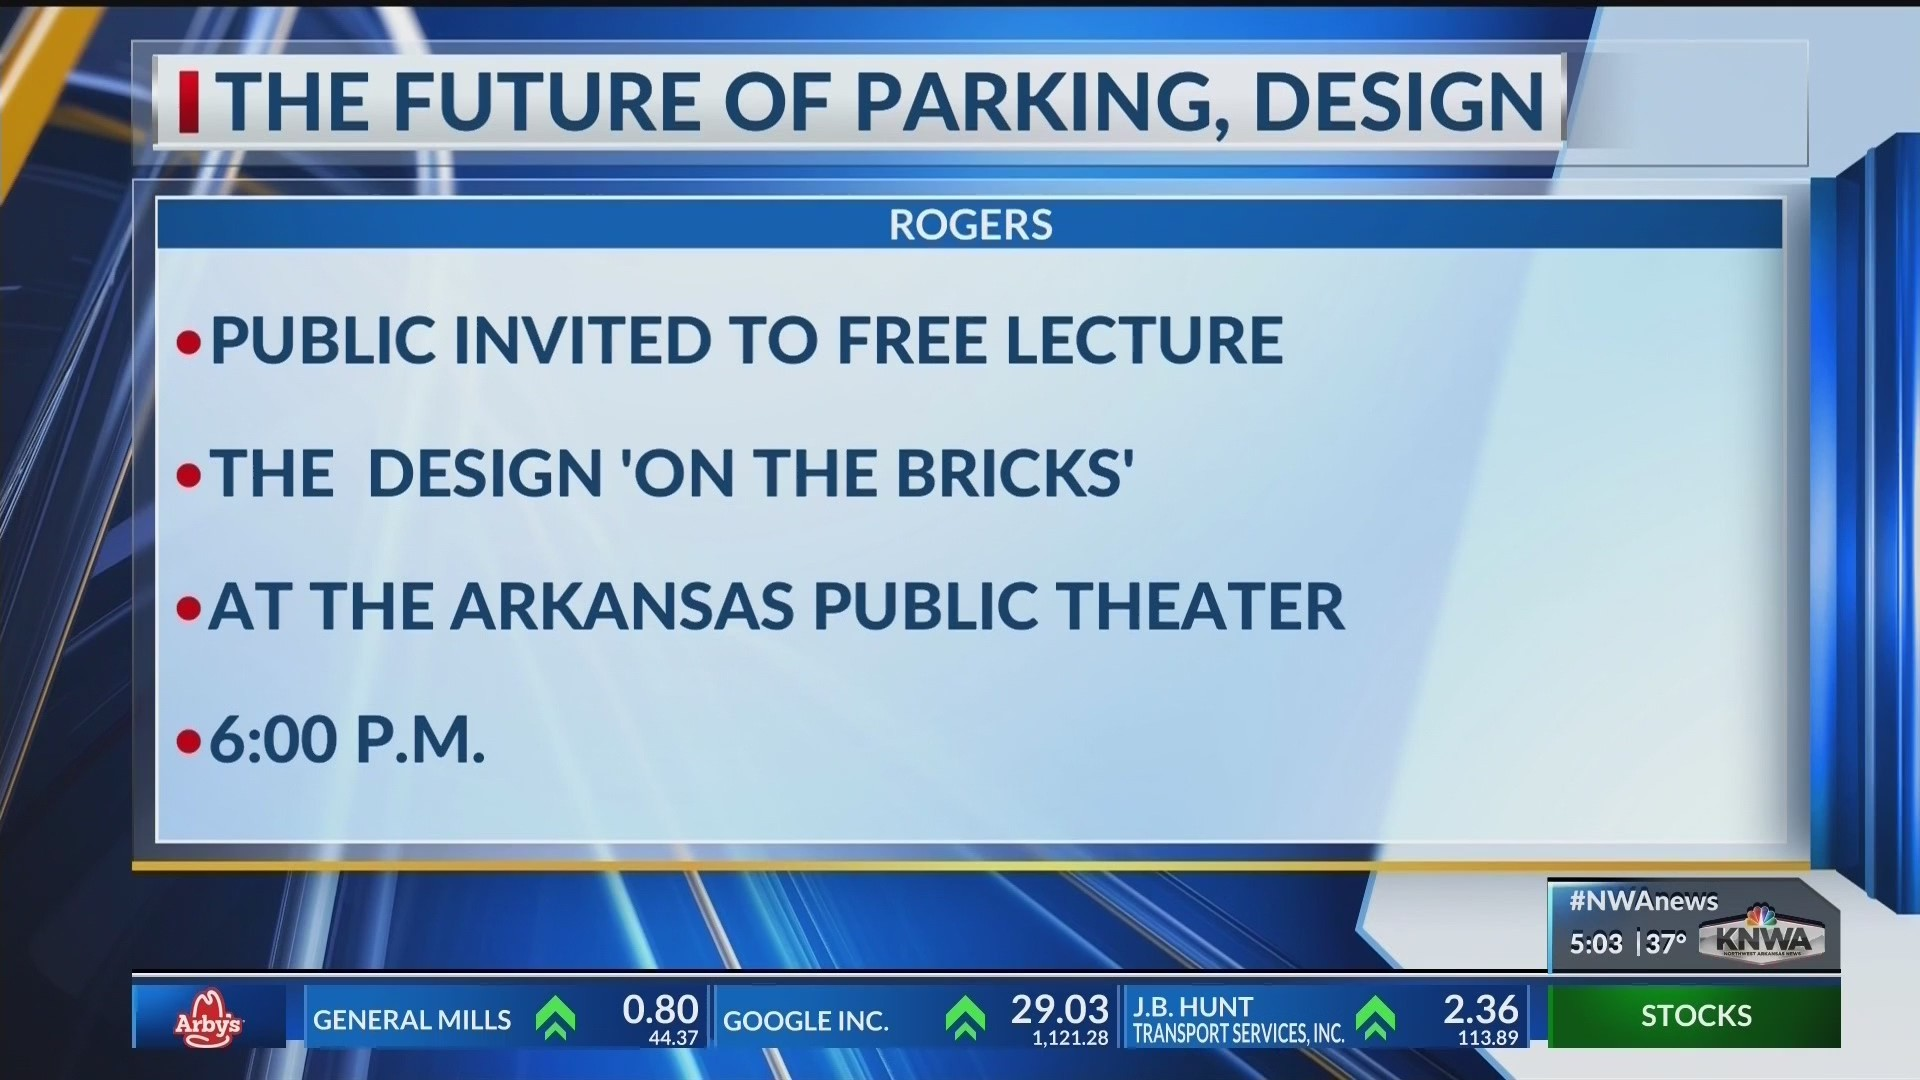 Rogers_Hosts_Public_Lecture_on_Parking_a_0_20181017114537